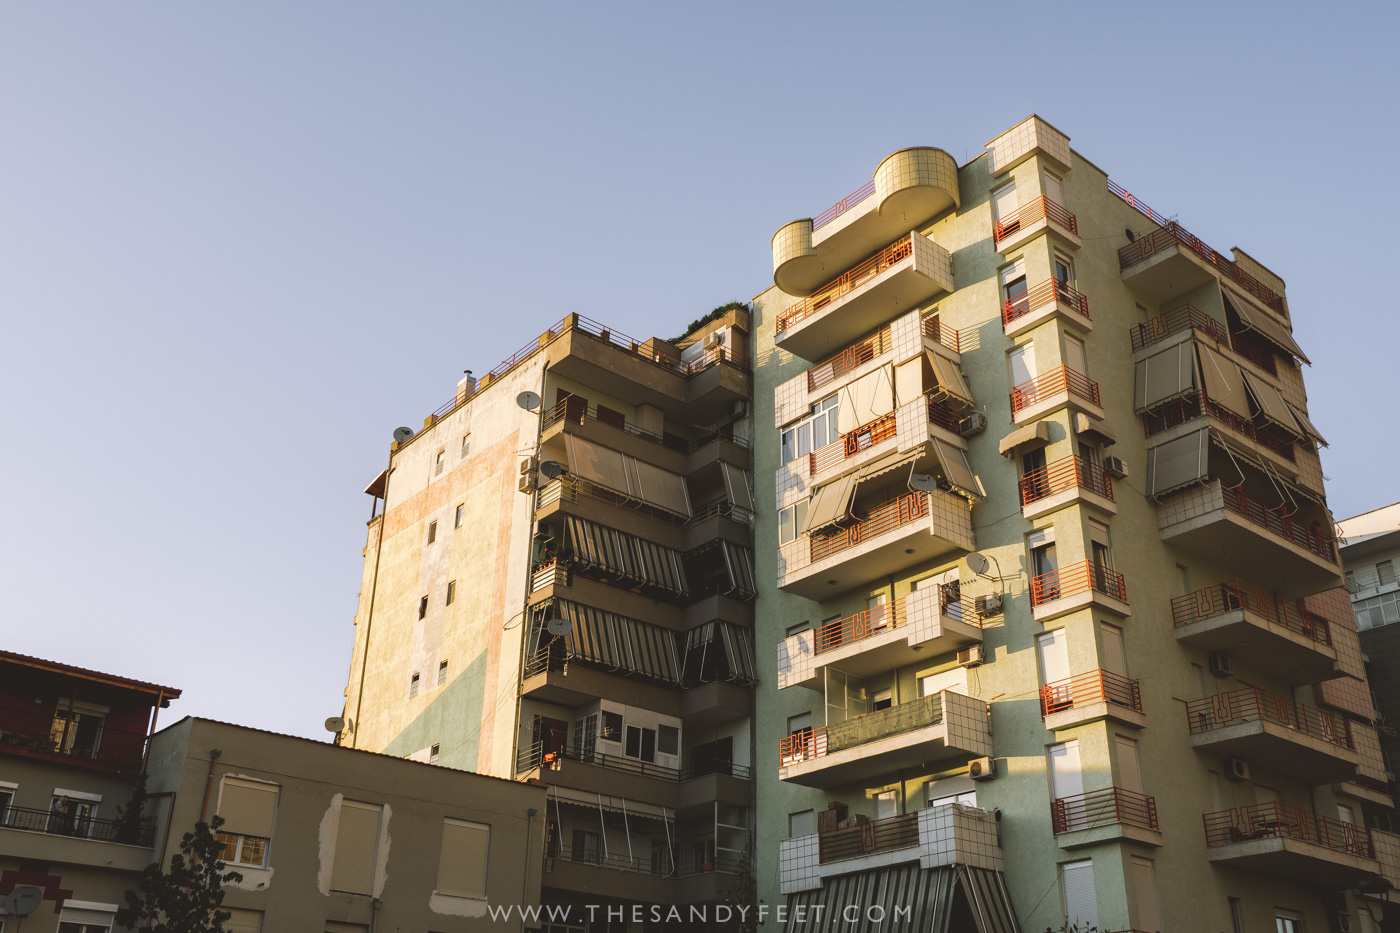 Tirana Albania | Things To Do In Tirana Albania